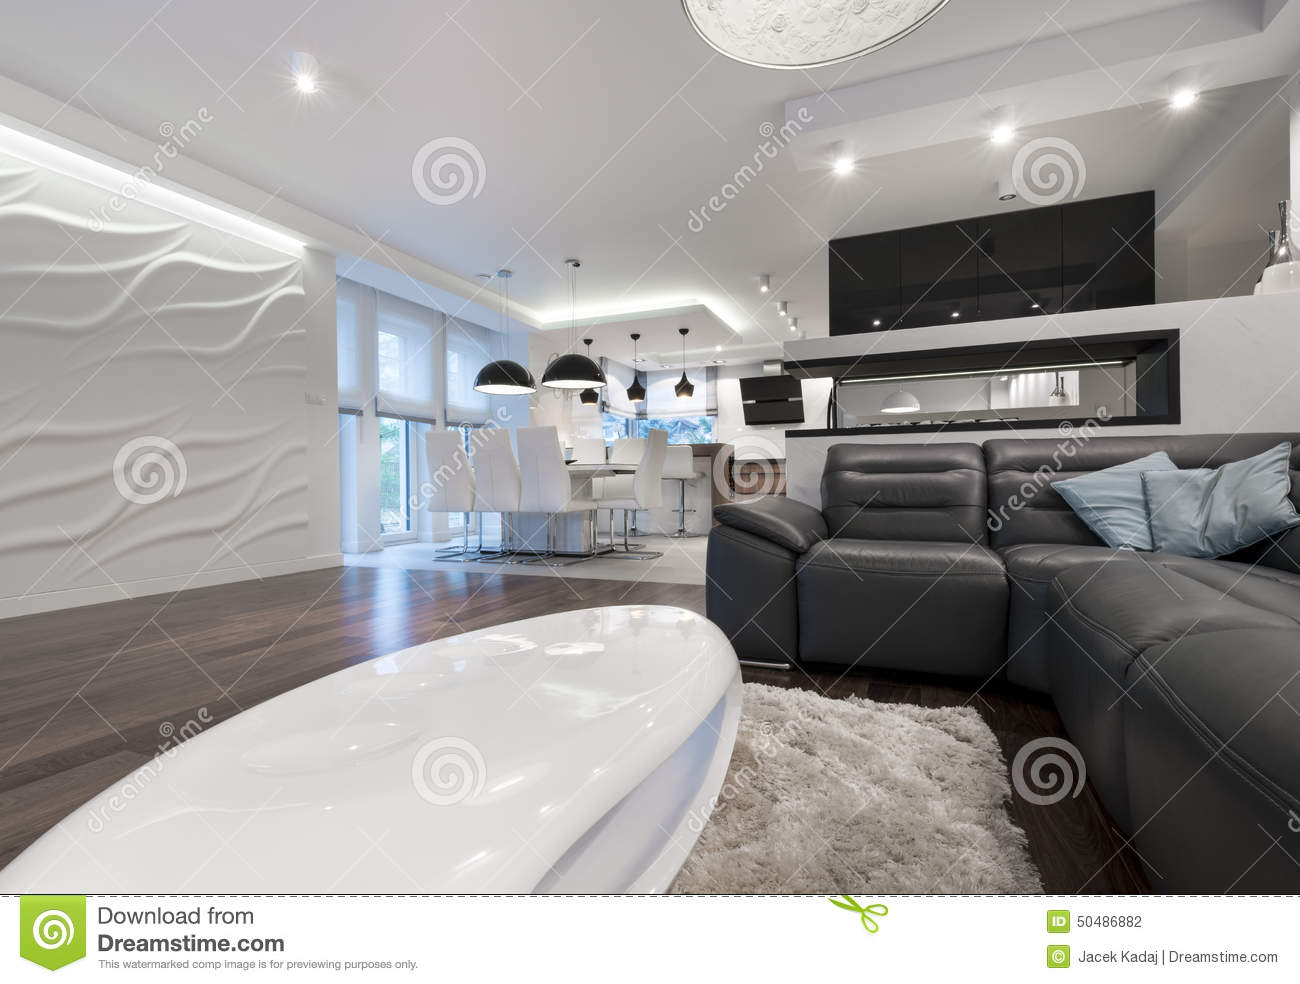 Modern interior design living room with kitchen stock photo image 50486882 - Modern interior design for living room ...